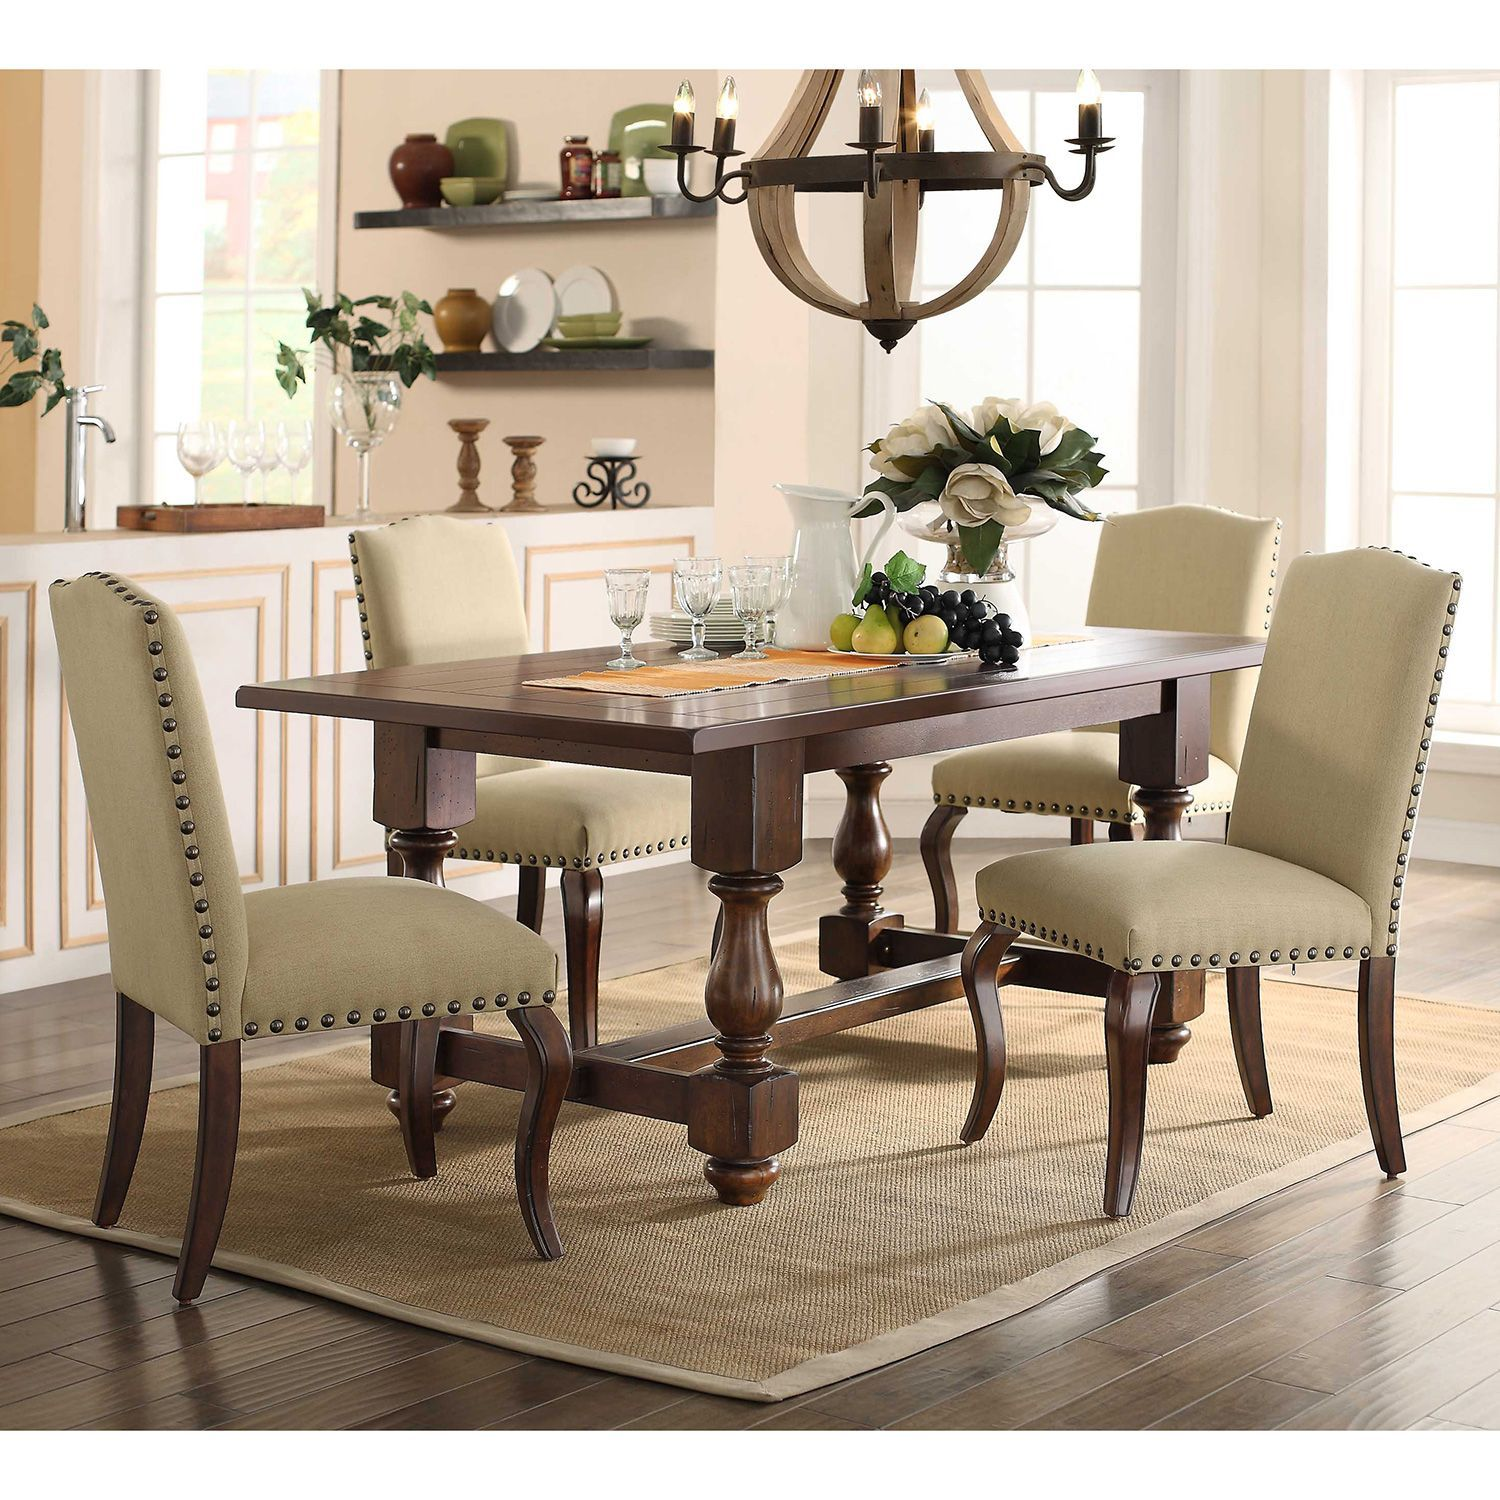 Dining Room Set  My Style  Pinterest  Casual Dining Rooms Endearing Cheap Dining Room Sets Under 100 2018